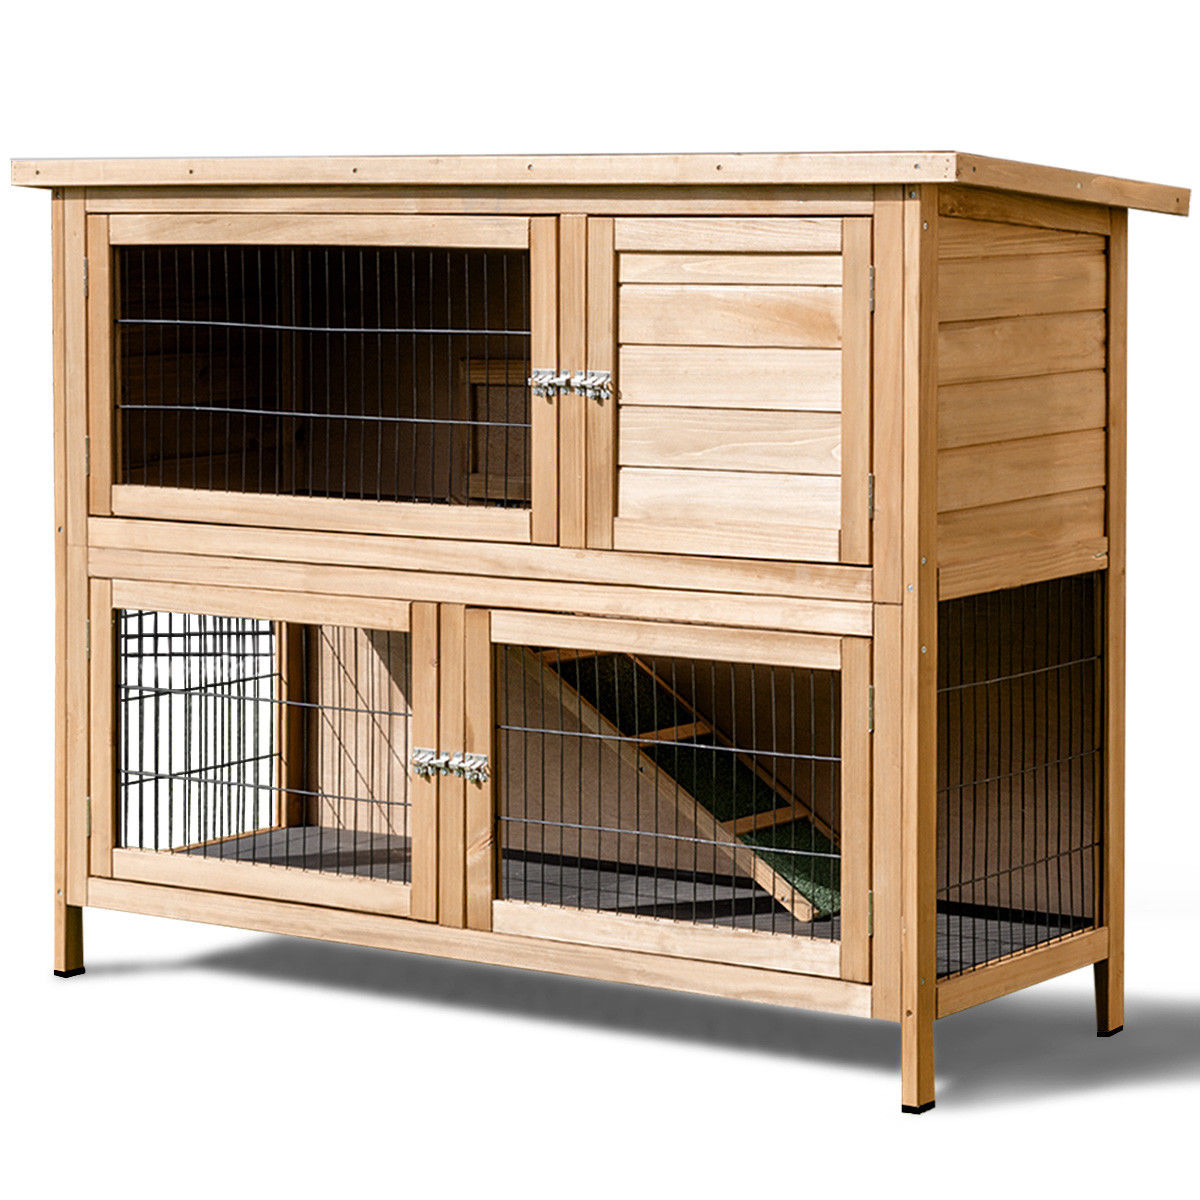 Gymax 52'' Outdoor Rabbit And Small Animal Hutch